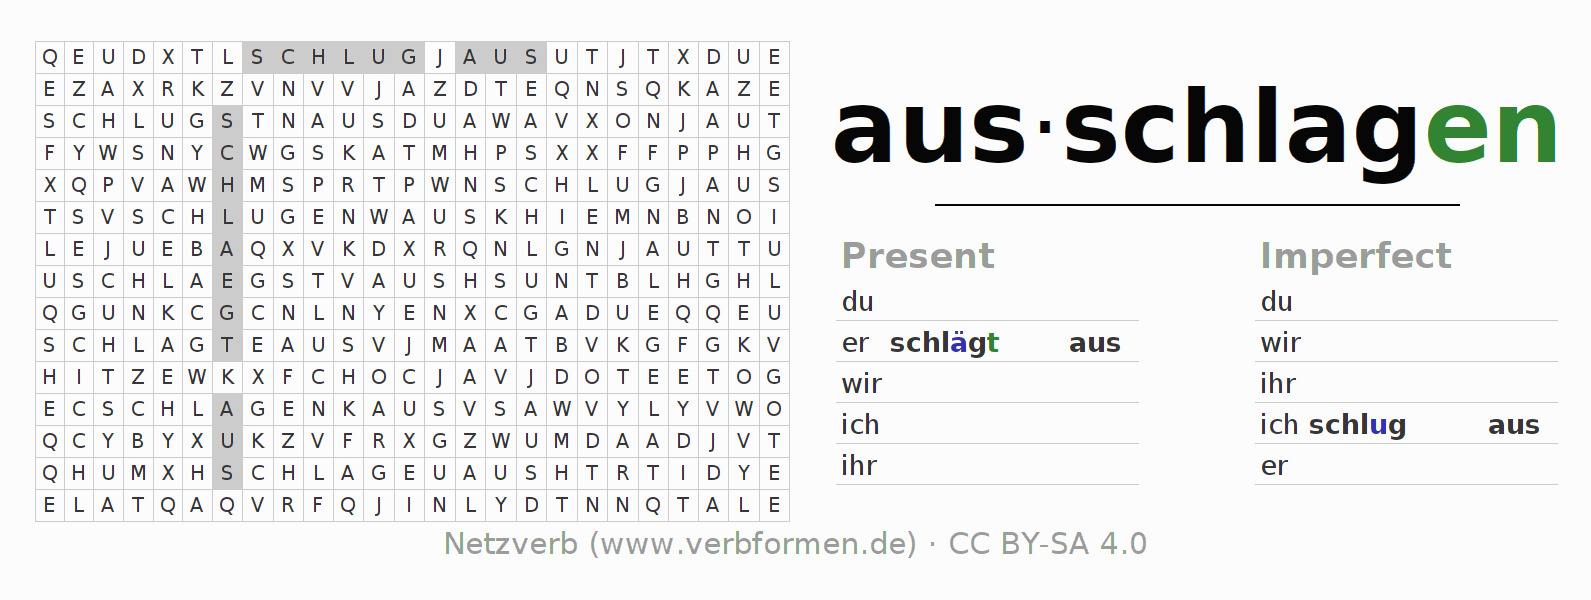 Word search puzzle for the conjugation of the verb ausschlagen (ist)